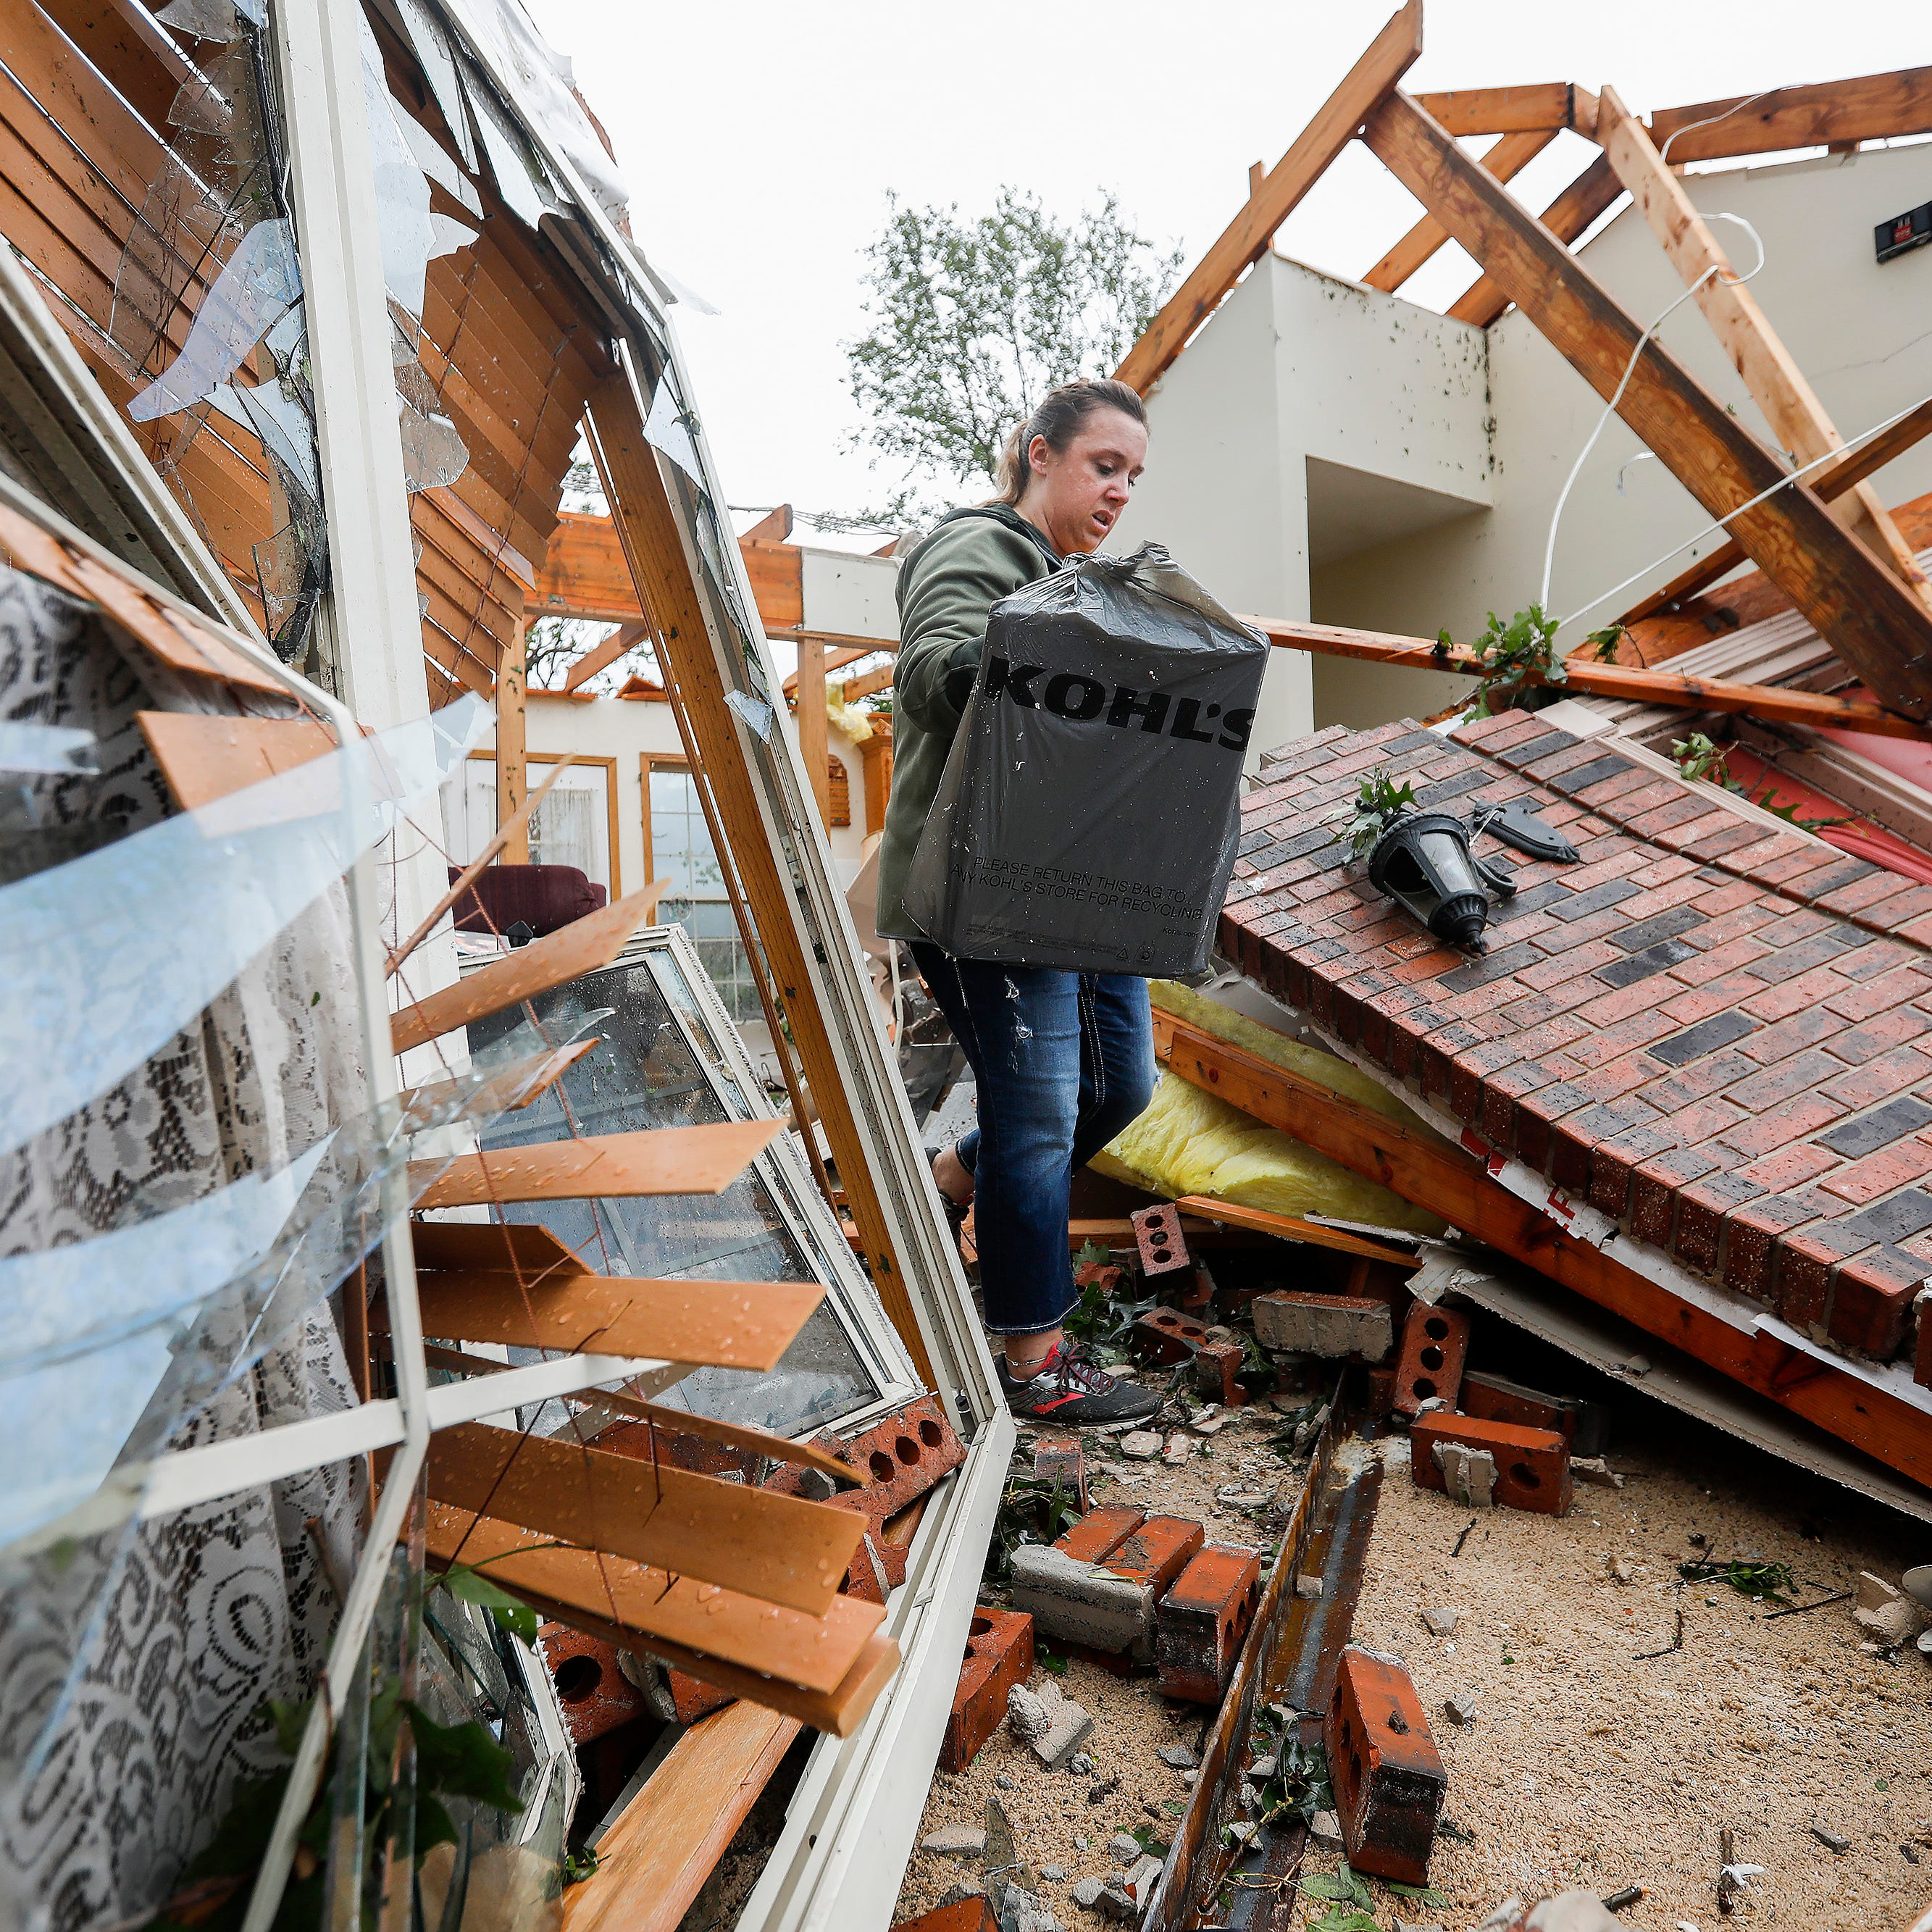 Overnight tornado leaves 3 dead, others homeless in areas north of Joplin